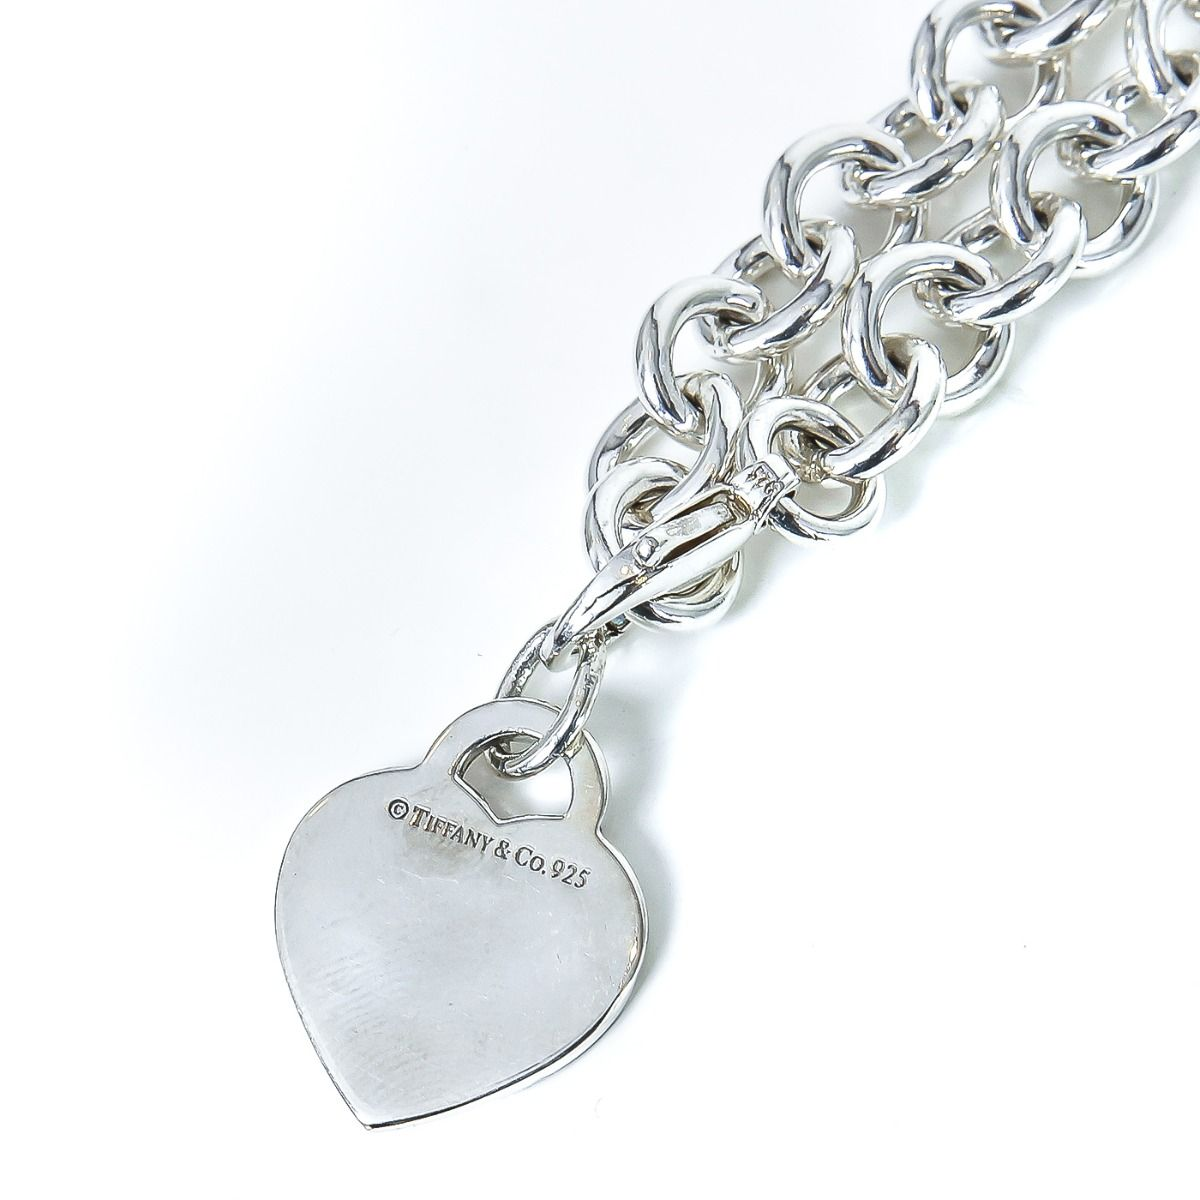 Tiffany Co Silver Heart Tag Necklace